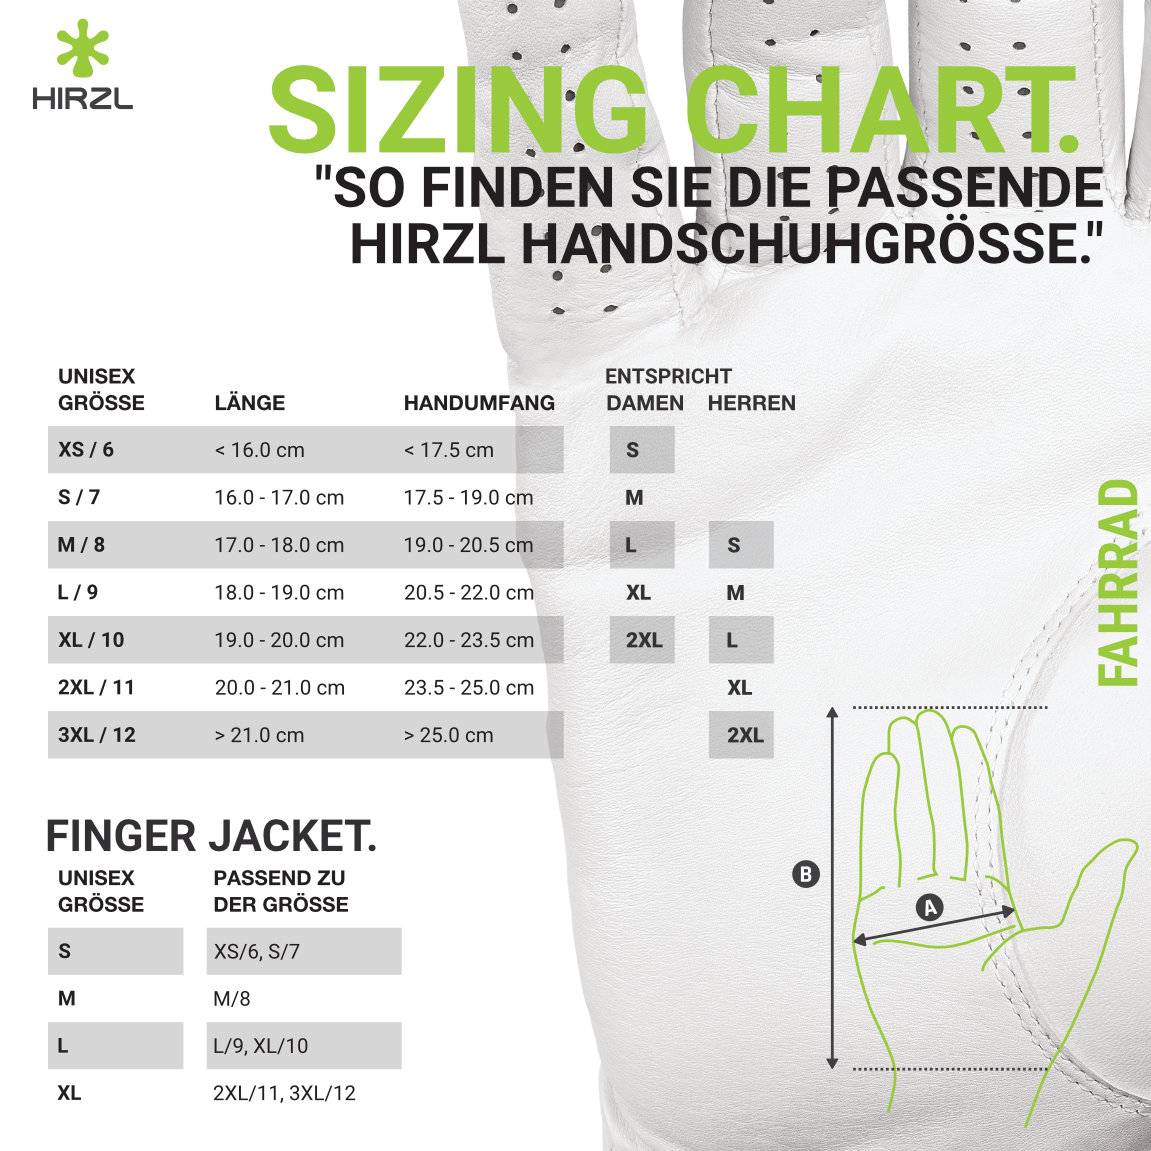 SIZING_BIKE_DE_840x840.jpg